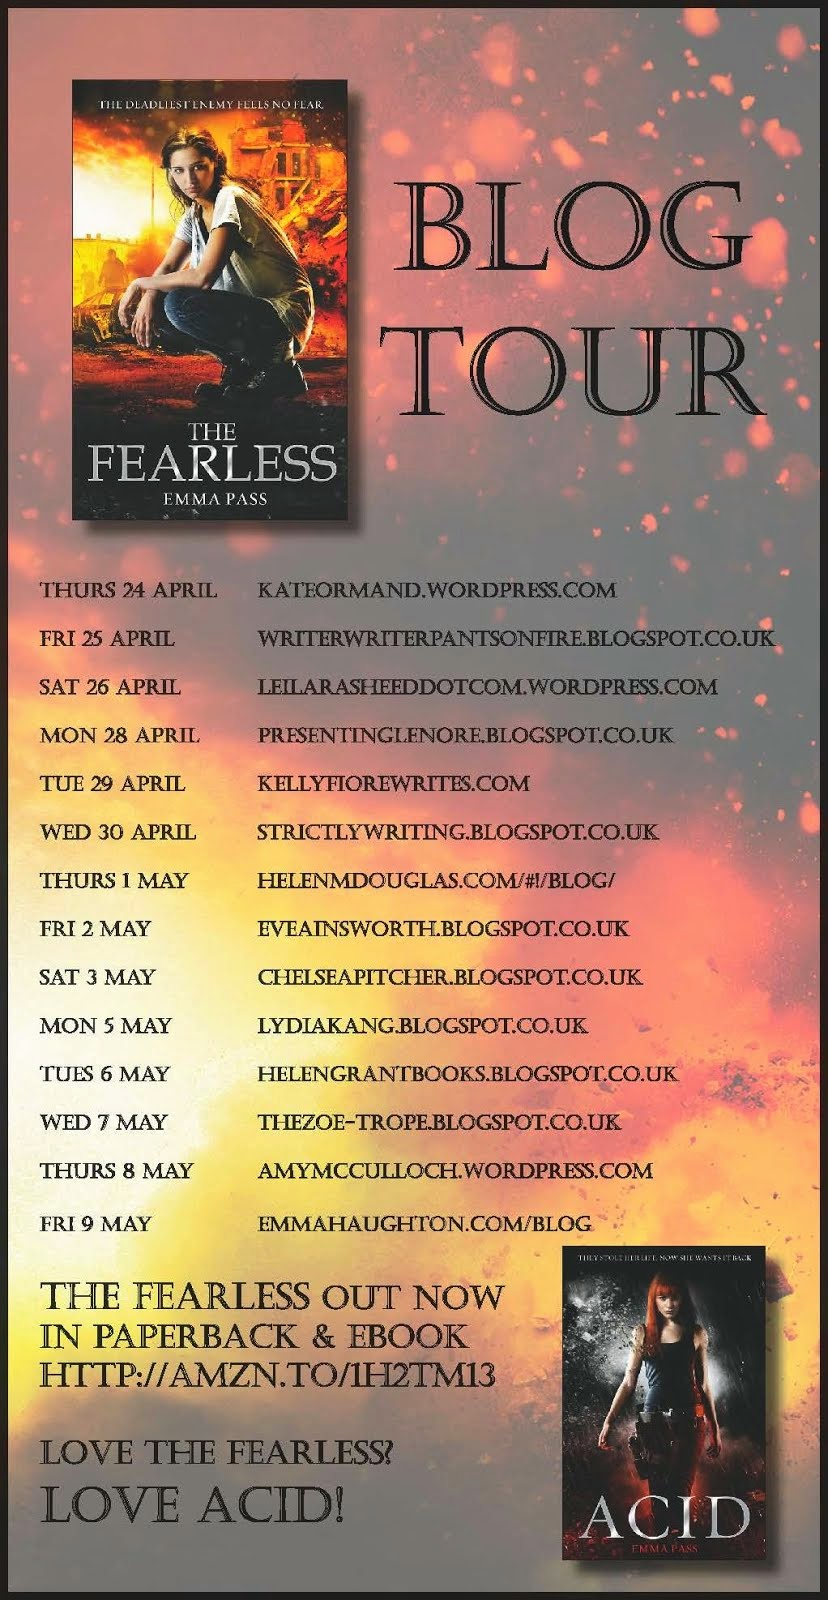 THE FEARLESS Blog Tour